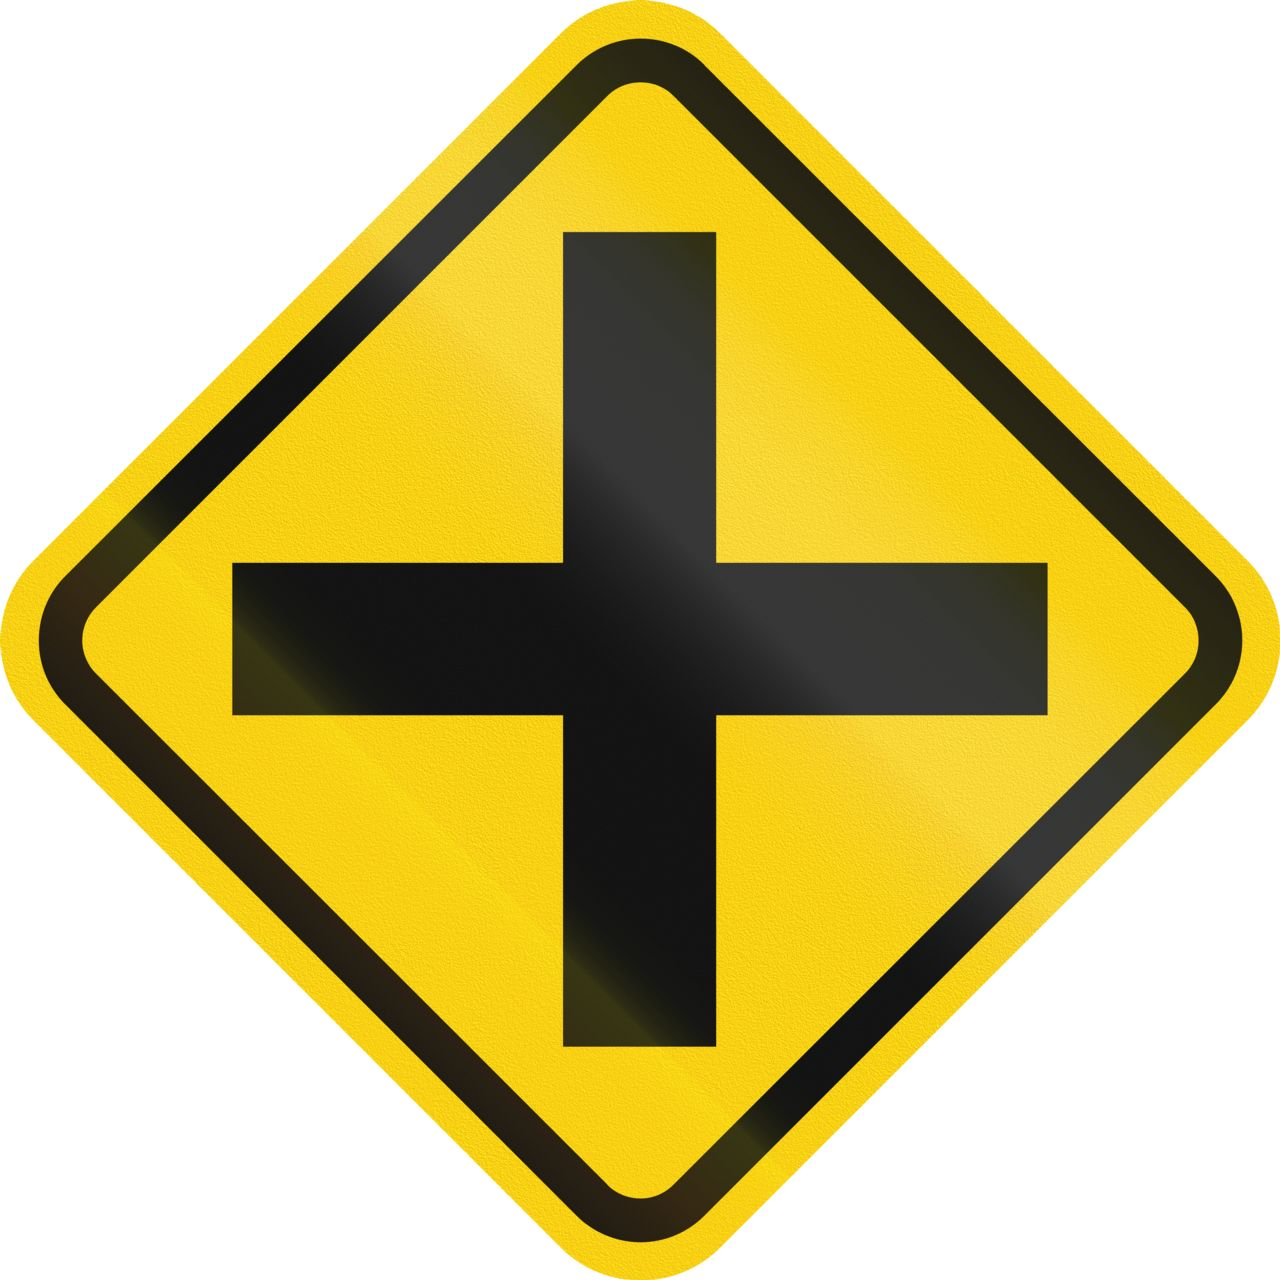 4-Way Intersection Street Sign